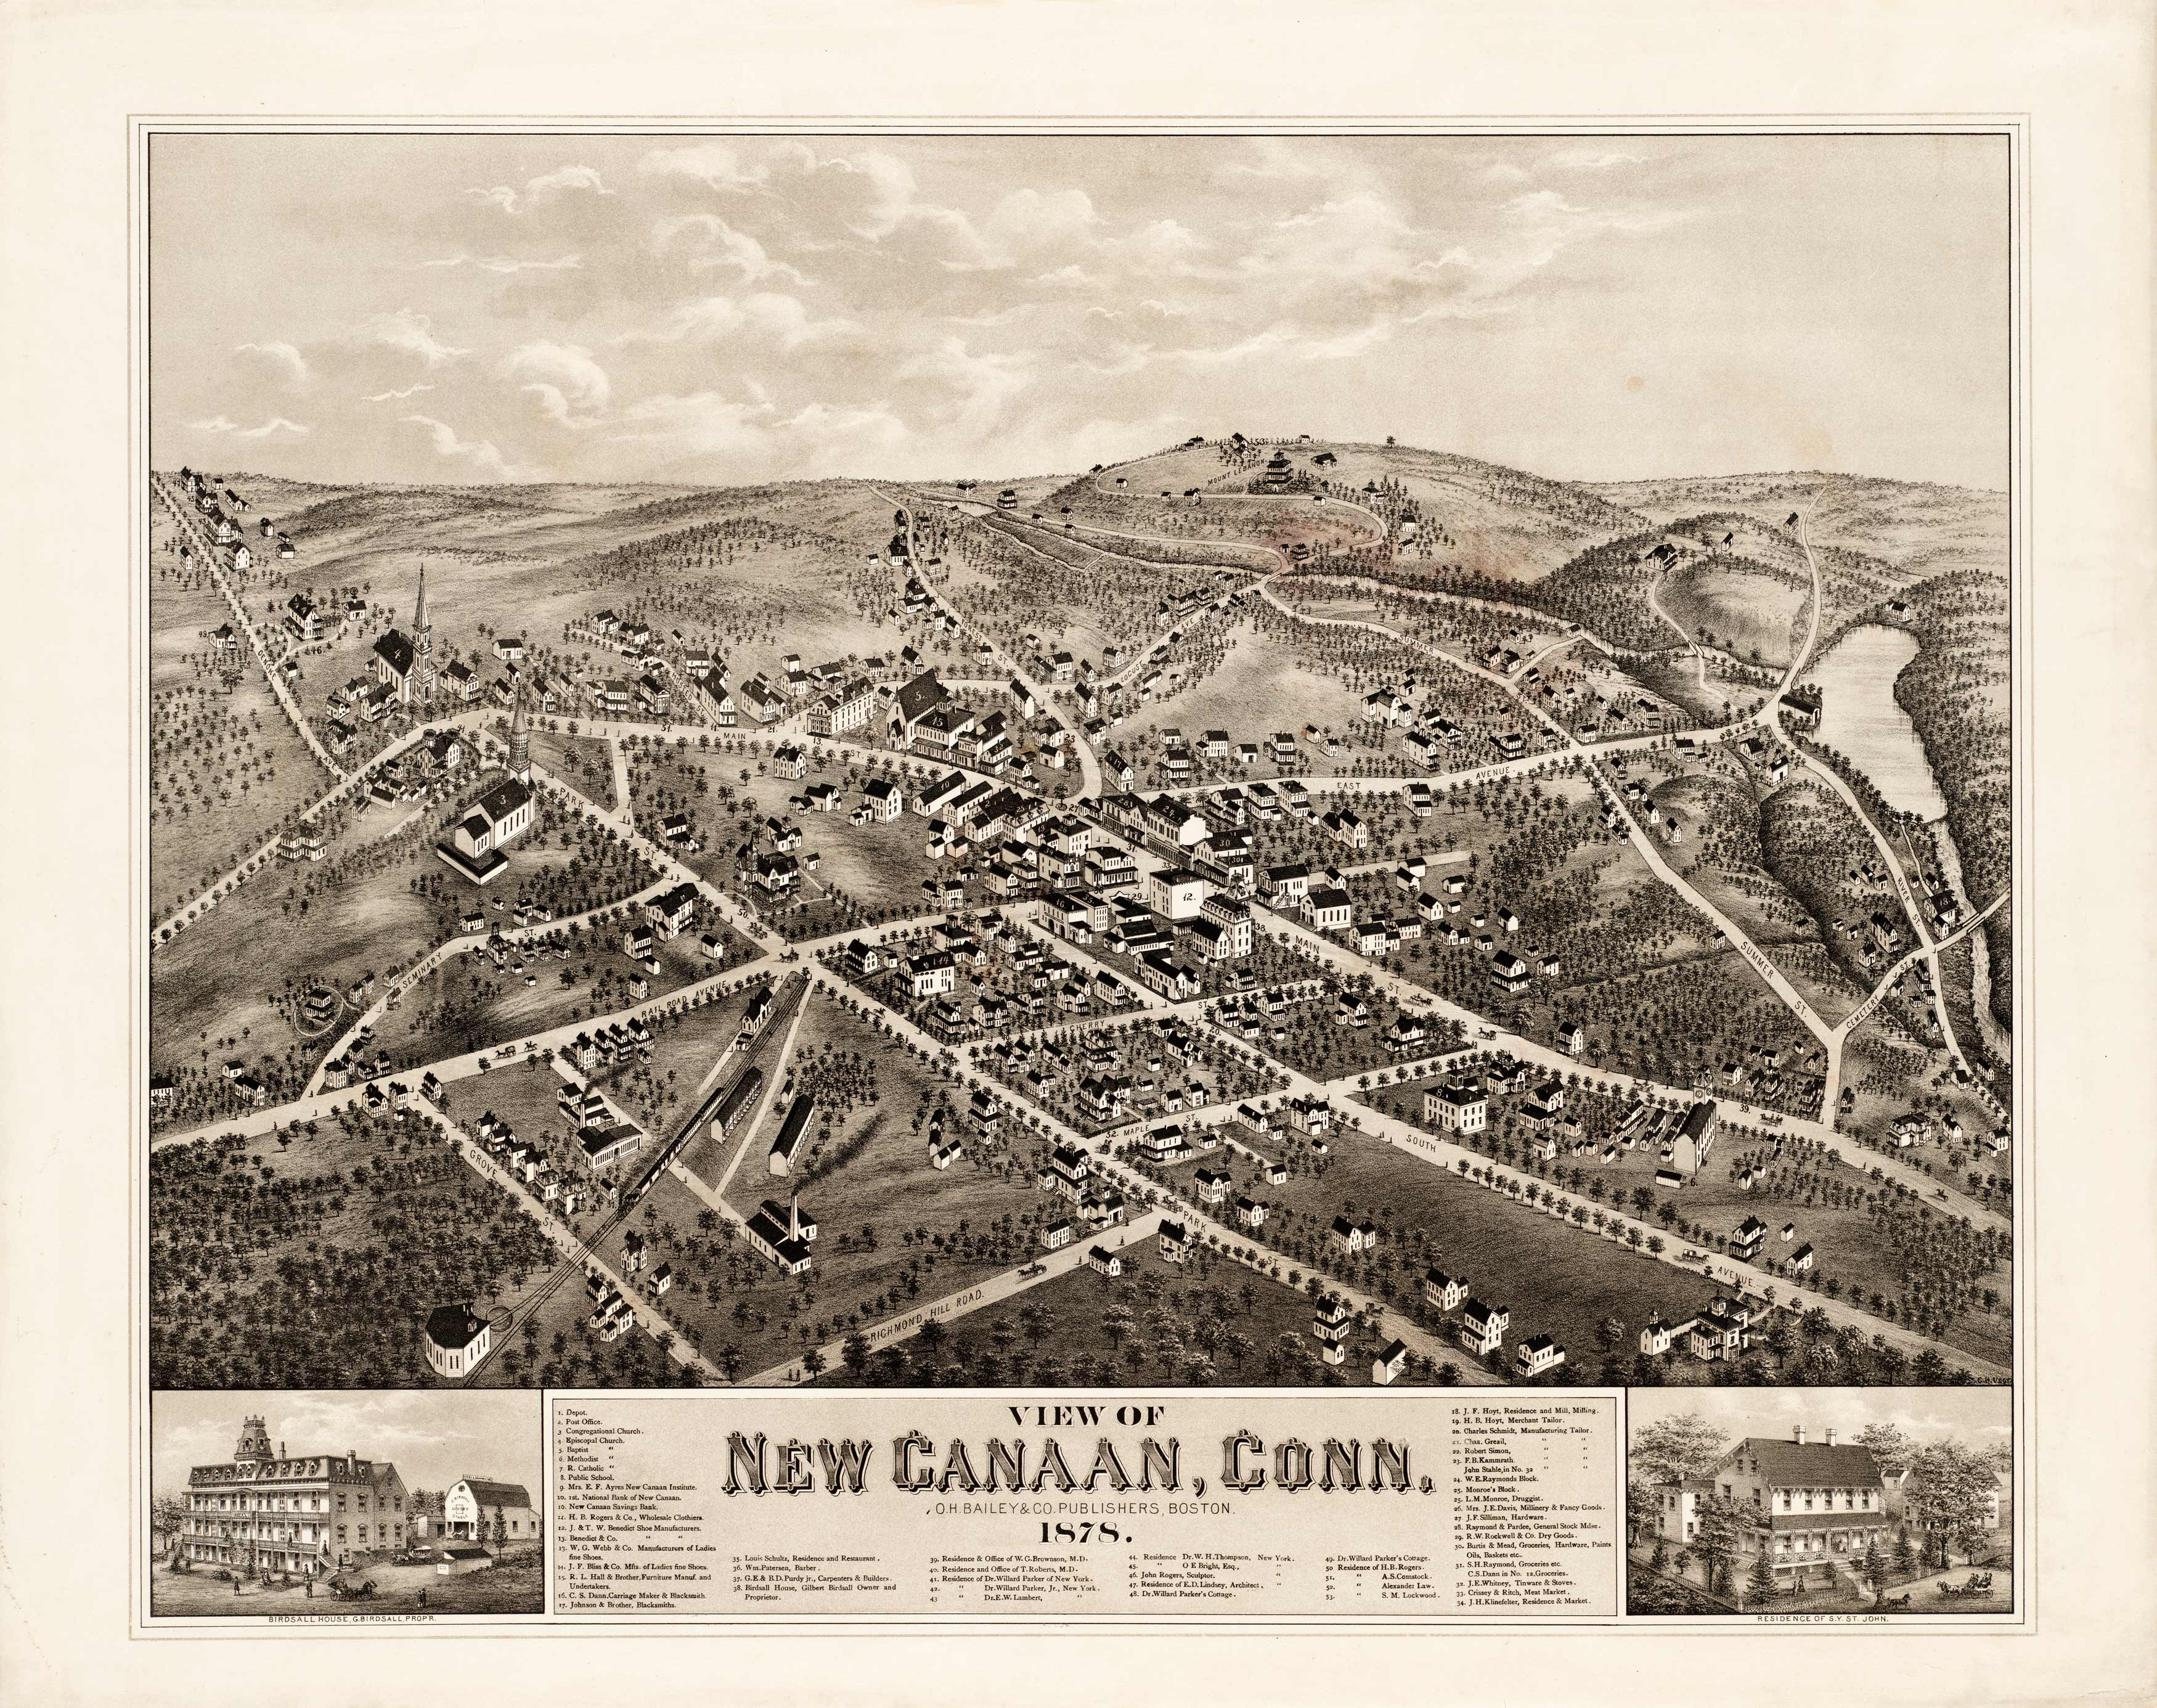 View of New Canaan